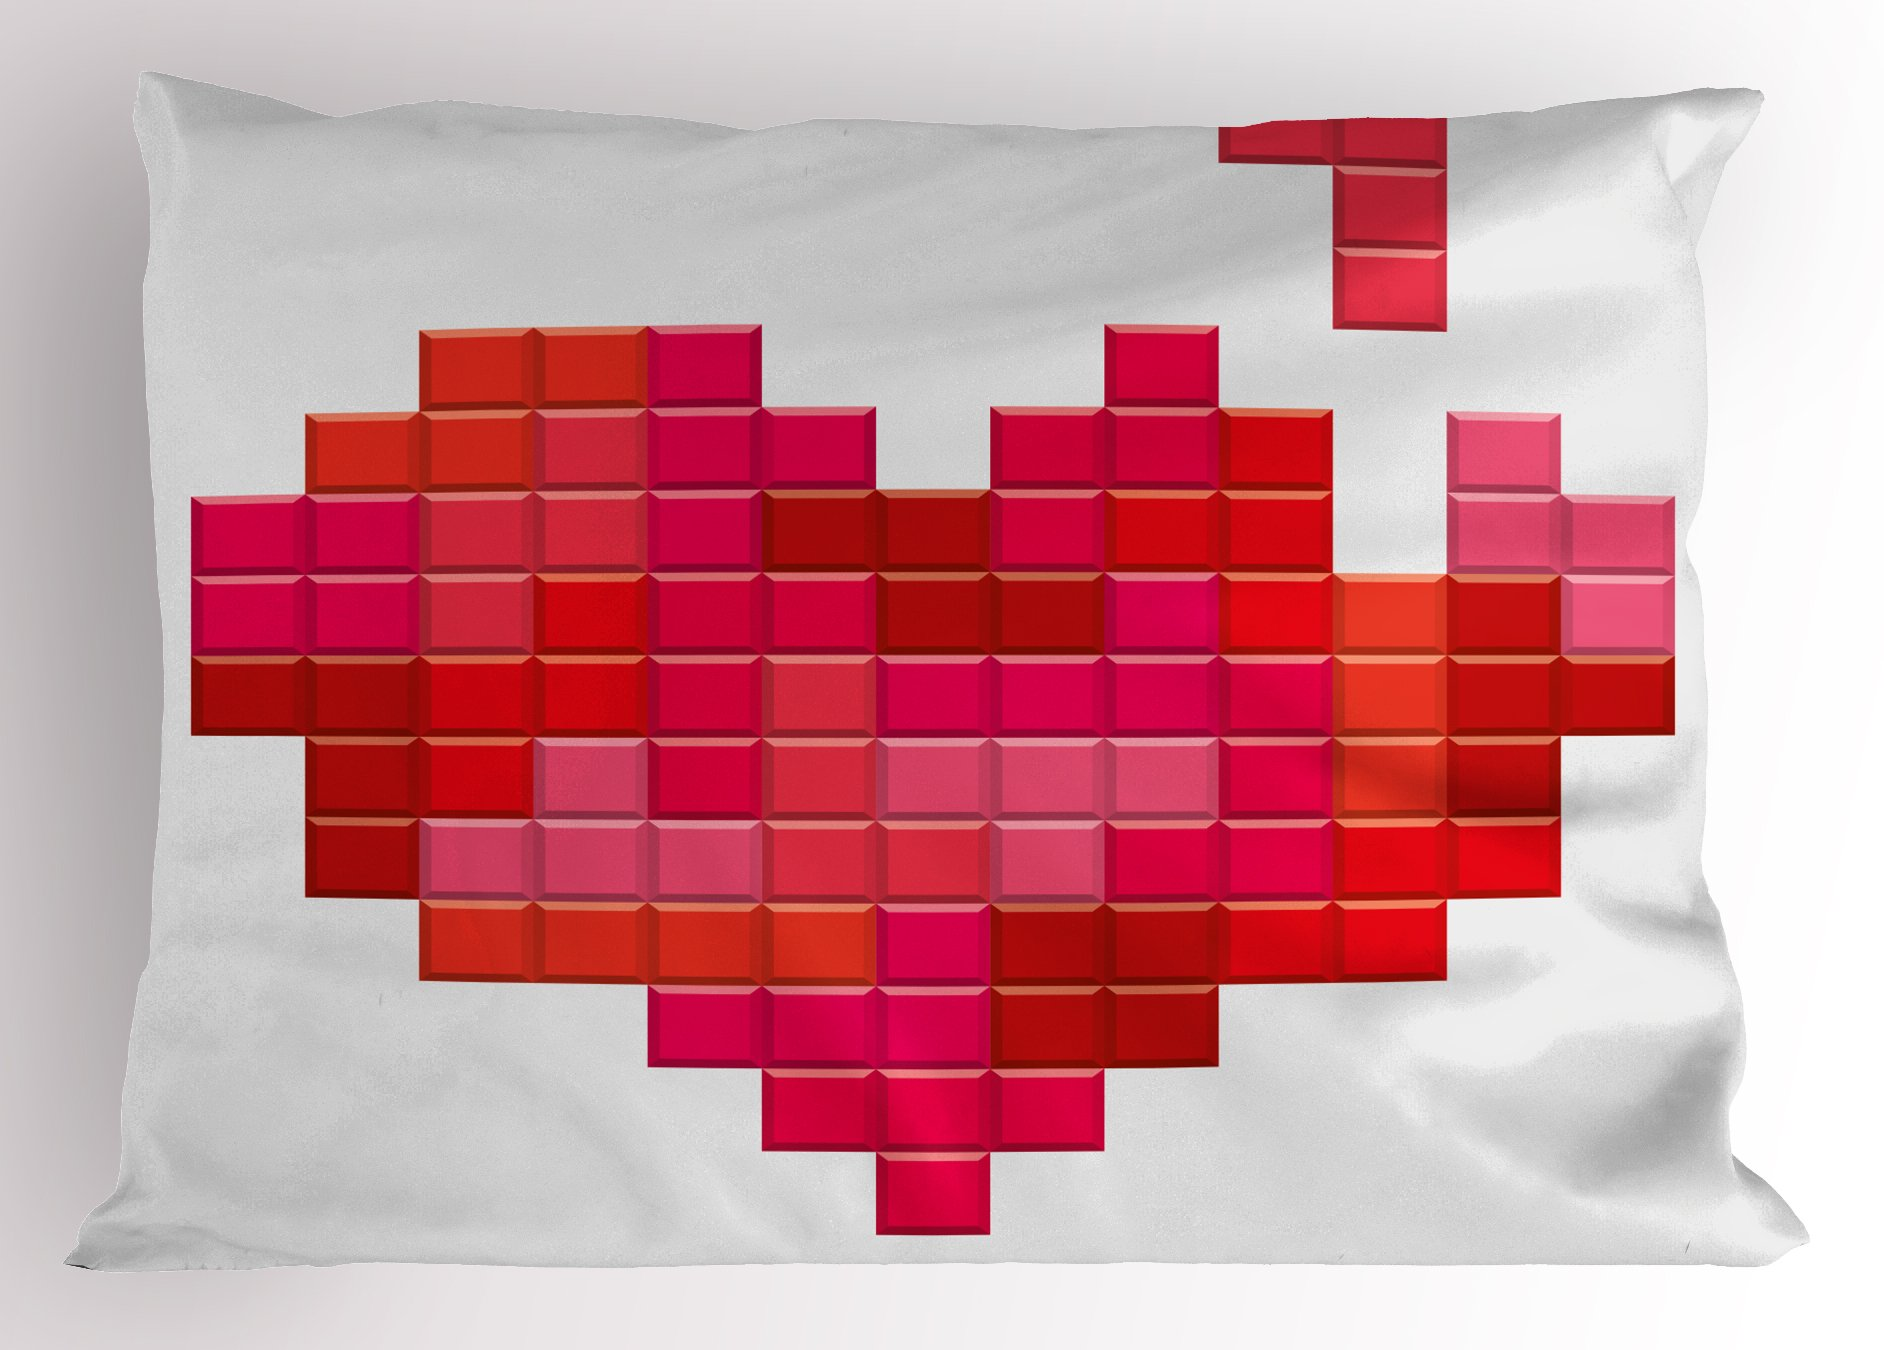 Lunarable Valentine's Day Pillow Sham, Video Game Bricks Red Heart Vintage Pixelated Design Joyful Romantic, Decorative Standard King Size Printed Pillowcase, 36 X 20 inches, Red Pink Scarlet